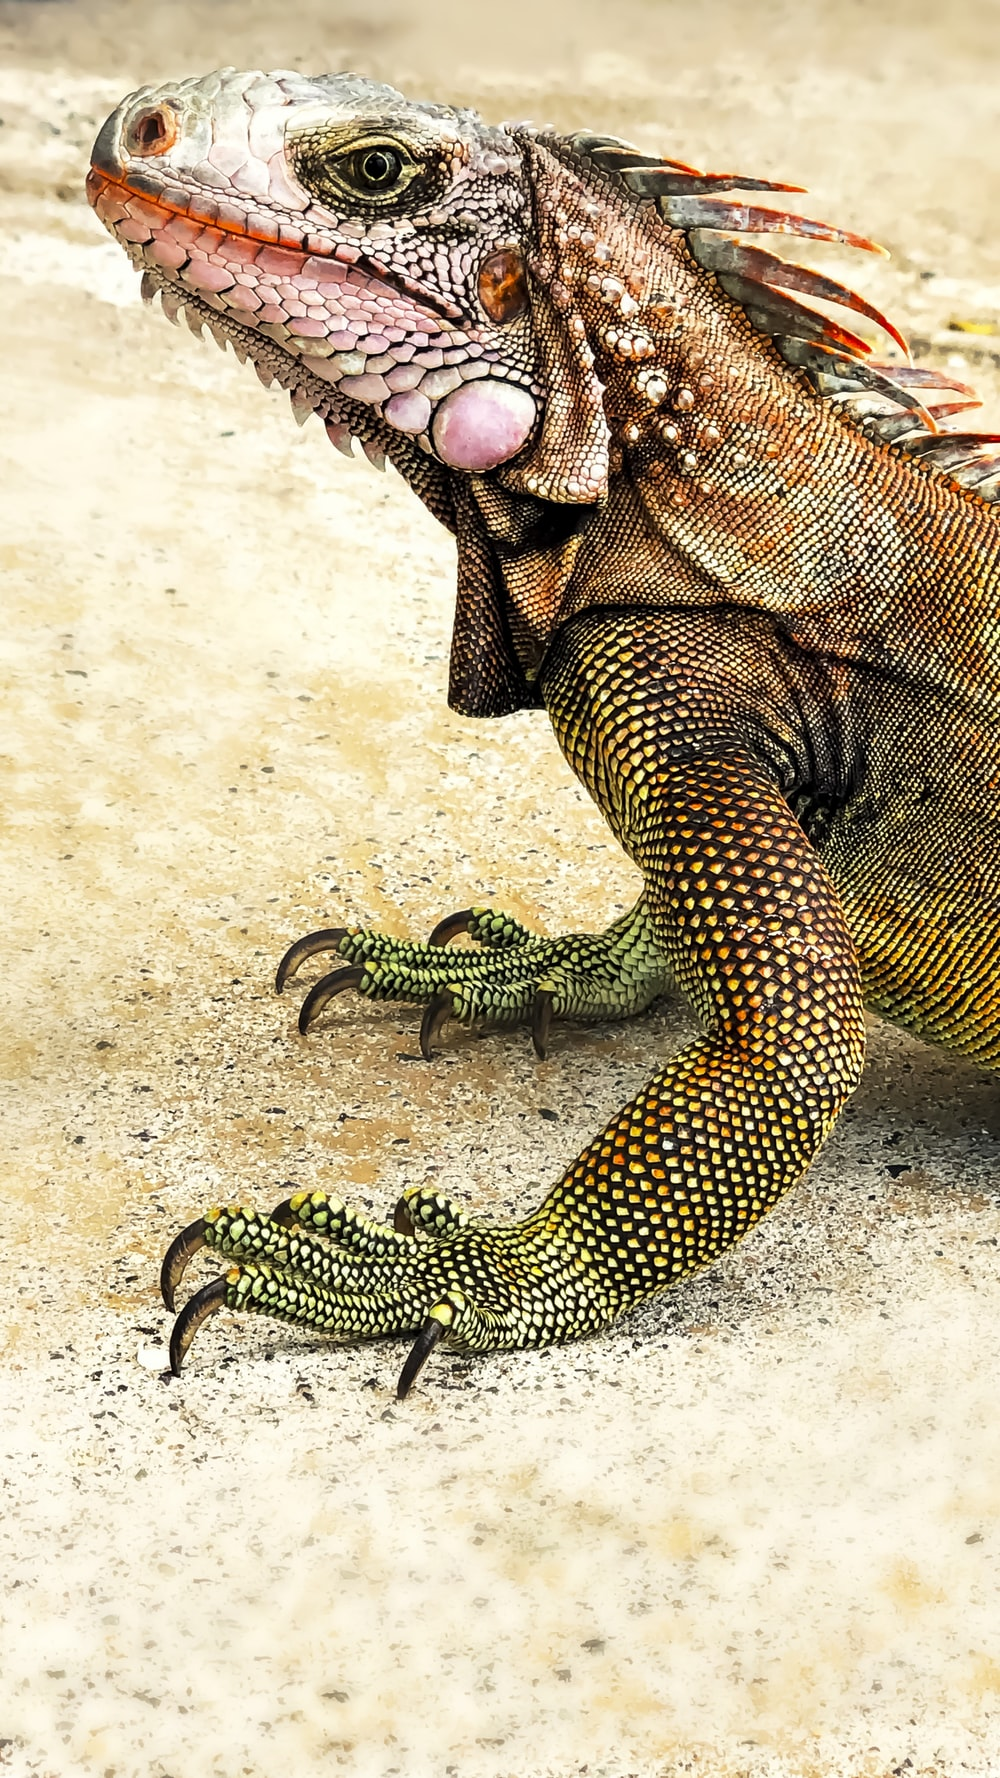 green and black reptile on white sand